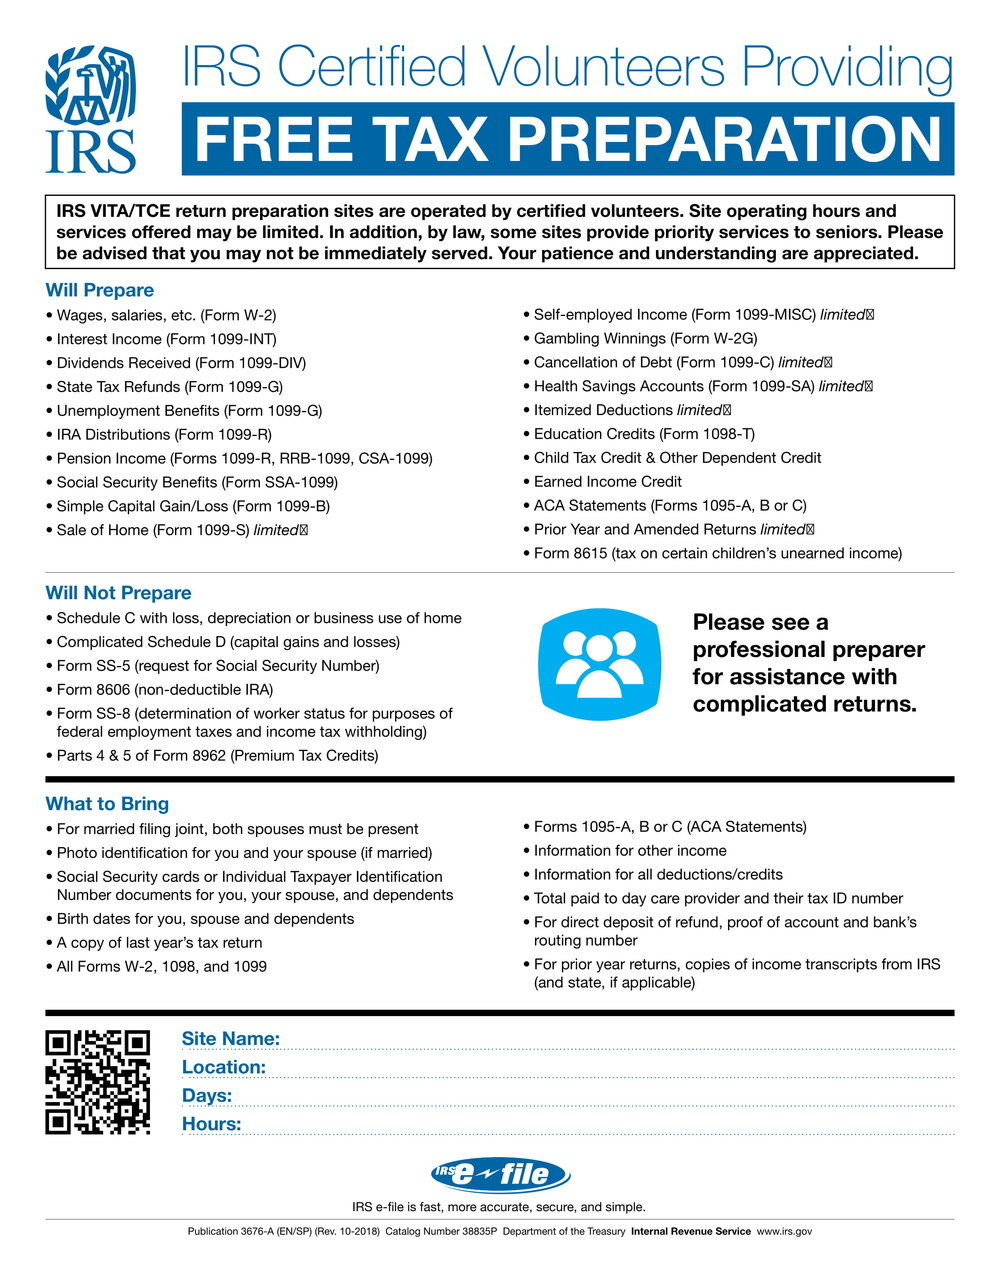 Scope of Services VITA IRS-1.jpg